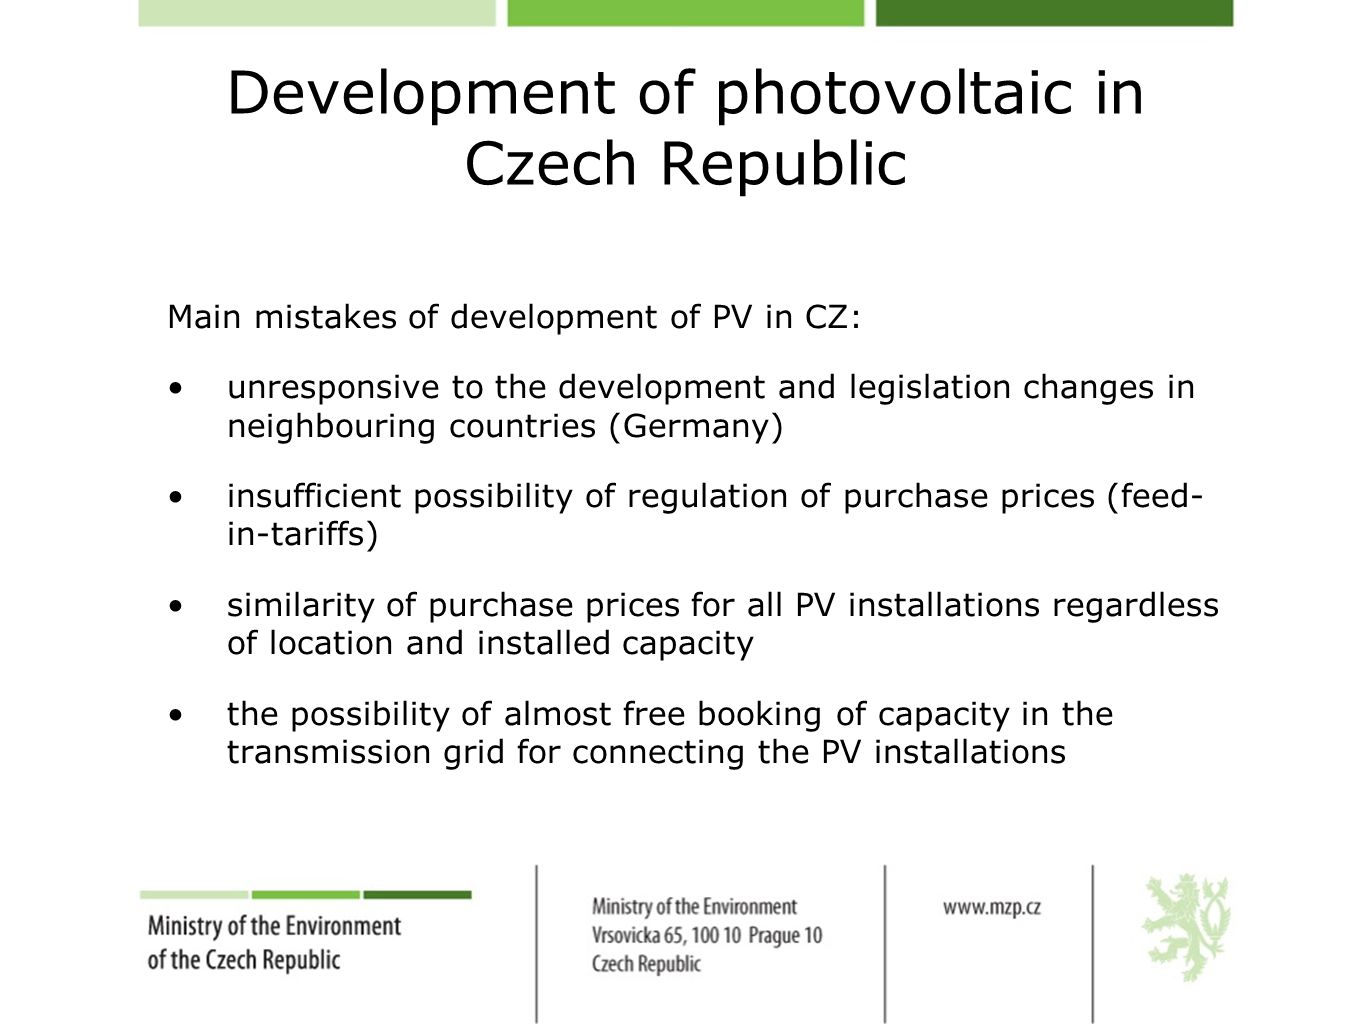 Development of photovoltaic in Czech Republic Main mistakes of development of PV in CZ: unresponsive to the development and legislation changes in neighbouring countries (Germany) insufficient possibility of regulation of purchase prices (feed- in-tariffs) similarity of purchase prices for all PV installations regardless of location and installed capacity the possibility of almost free booking of capacity in the transmission grid for connecting the PV installations